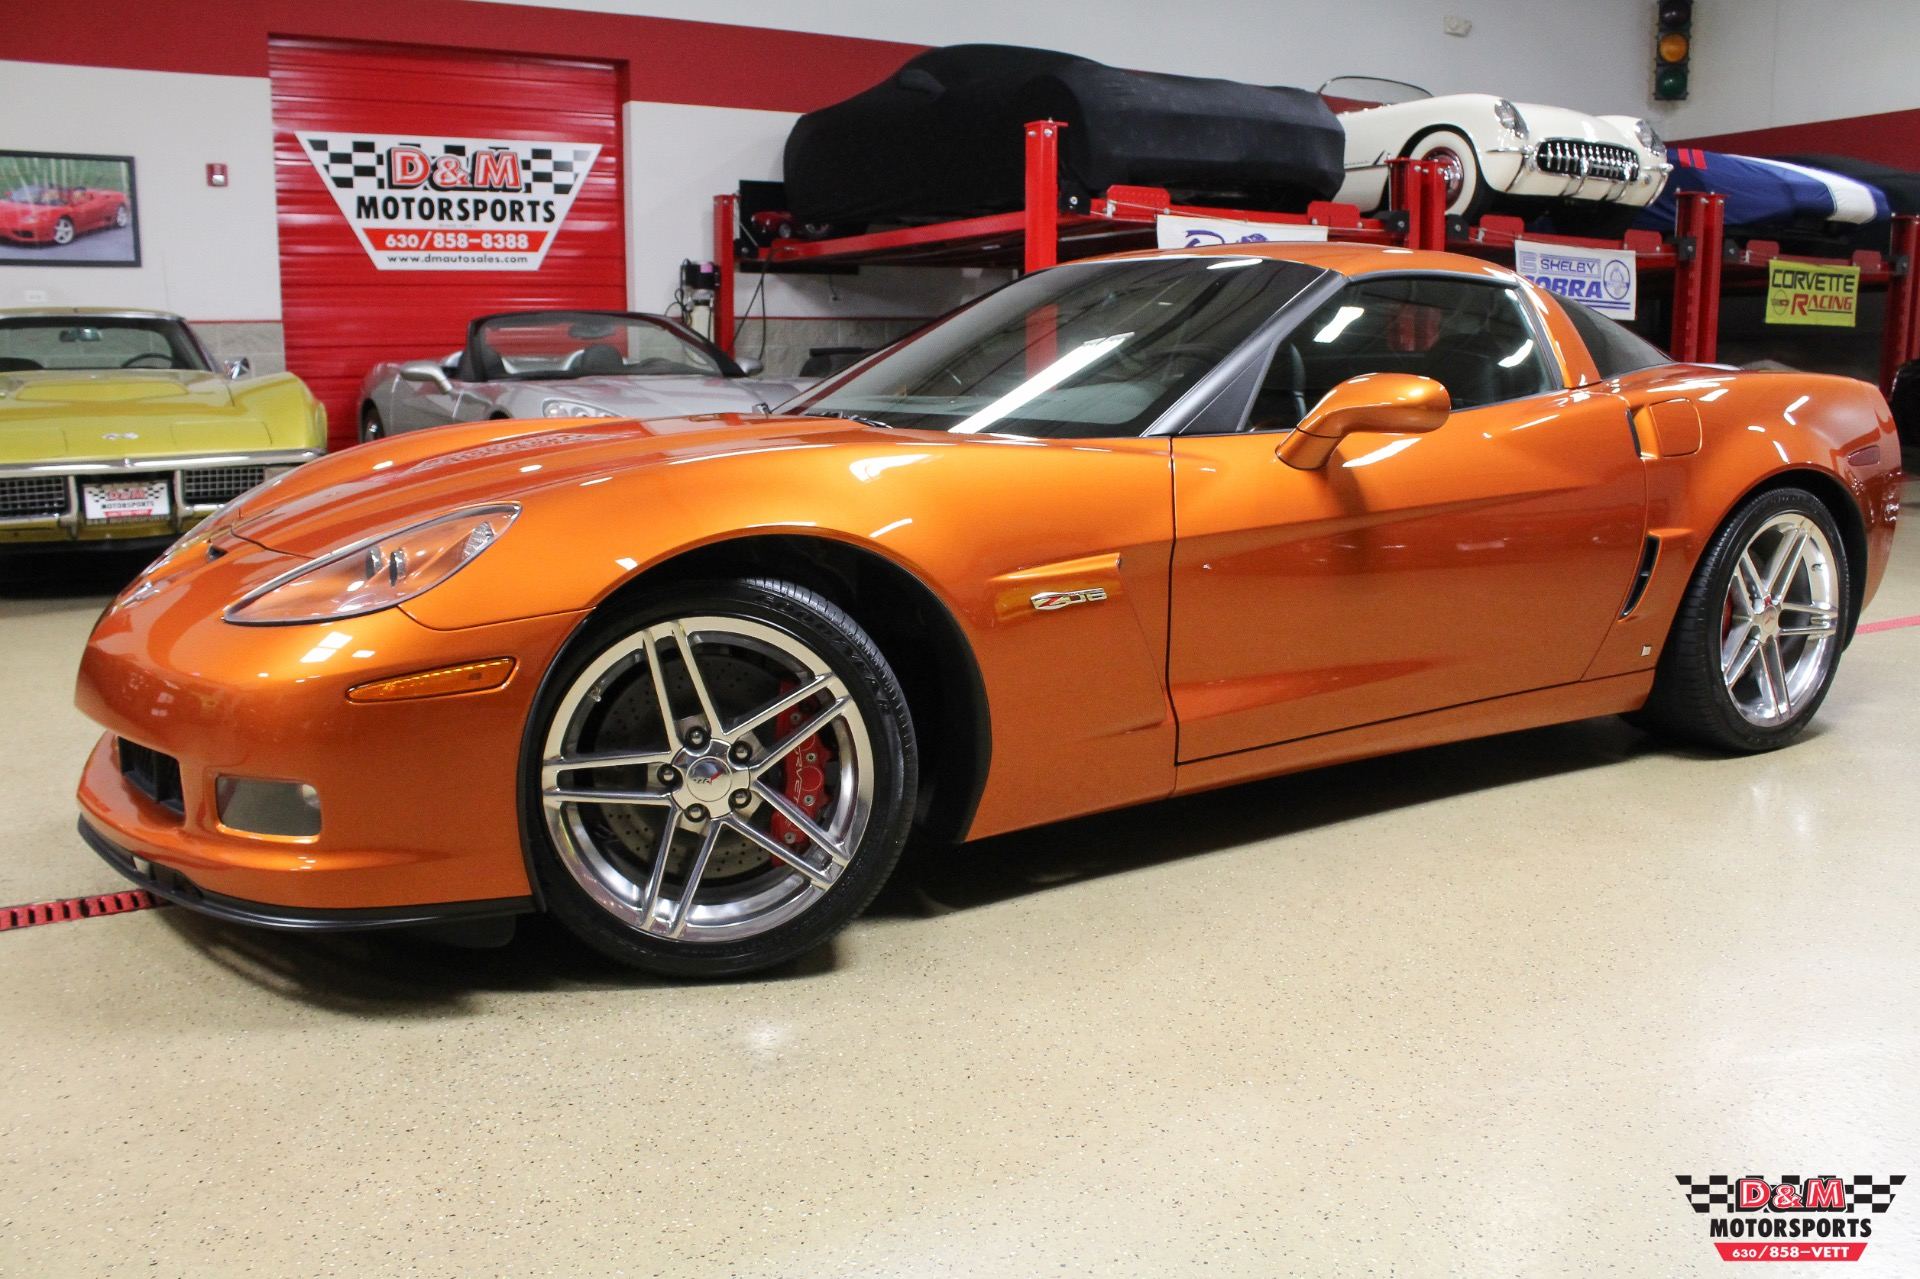 2007 Chevrolet Corvette Z06 Stock # M6727 for sale near Glen